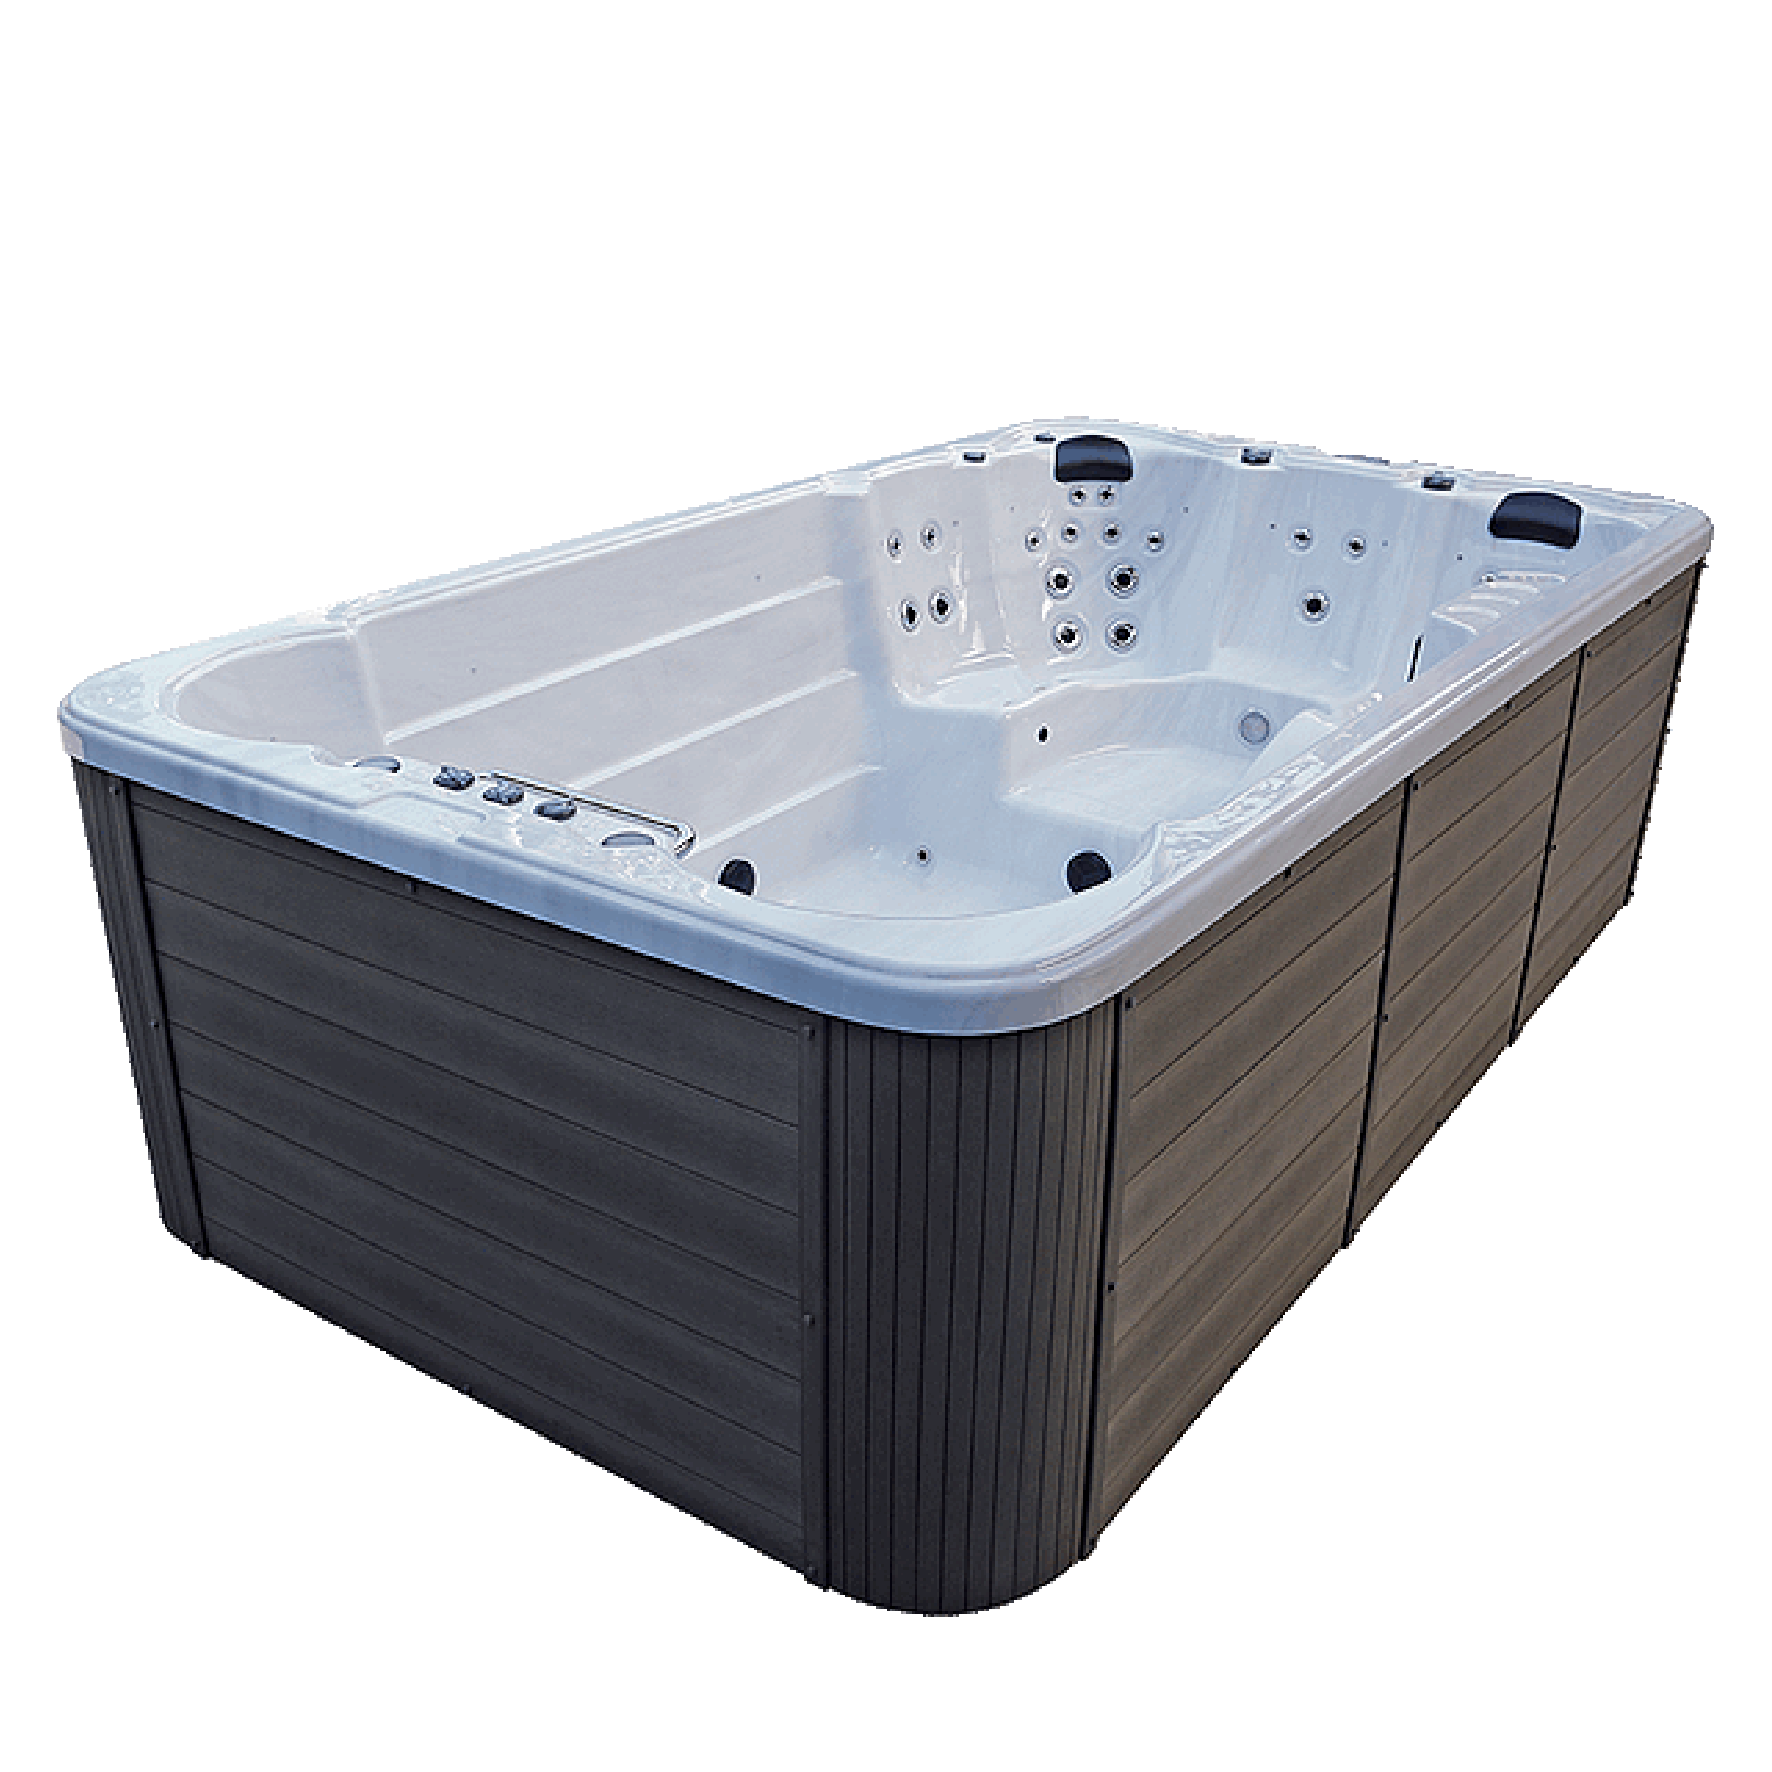 spa-de-nage-SWIM-SPA logidecor peips